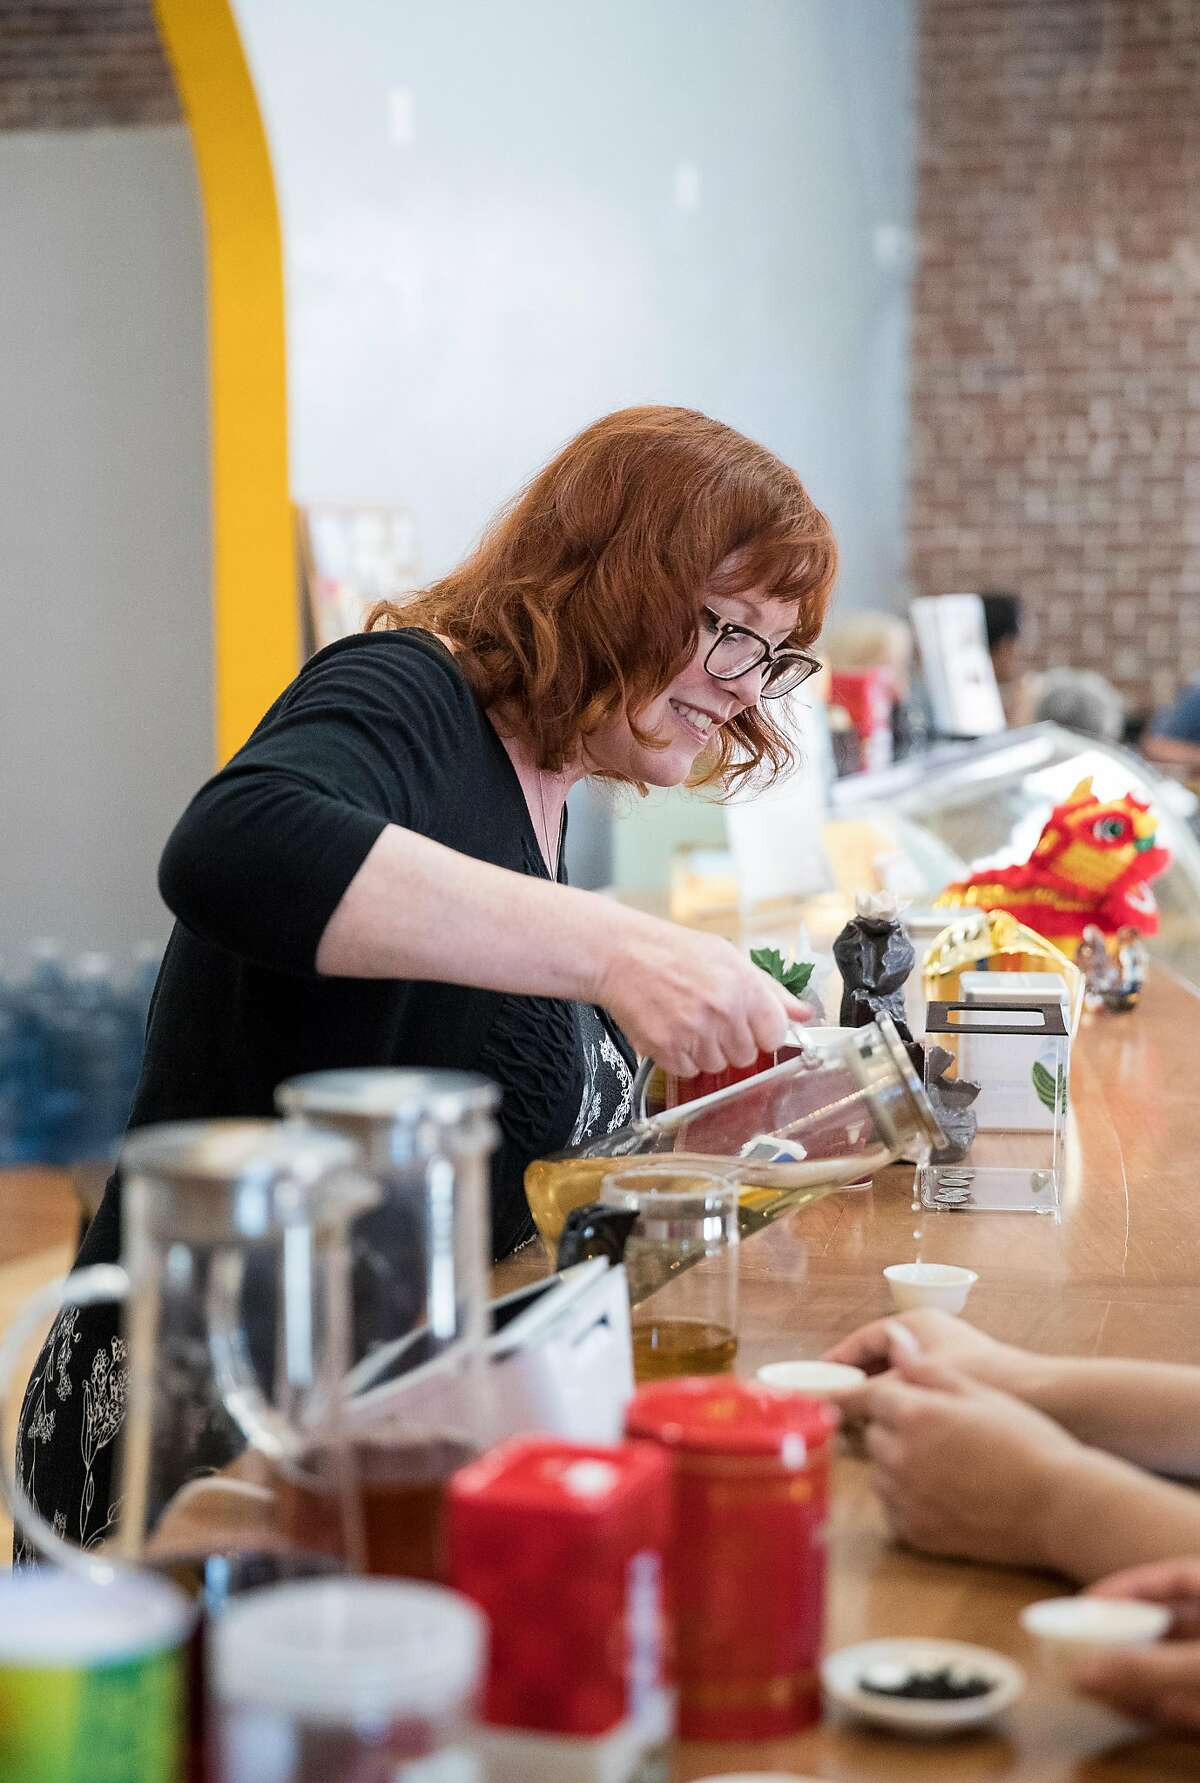 Tea guide Angela DeMoss pours tea for a tea flight tasting at Tea-Tasting in downtown Lodi, Calif., on Saturday, August 17, 2019. The business offers table tastings of a type of Wuyi Rock Tea and also flight tastings of tea.